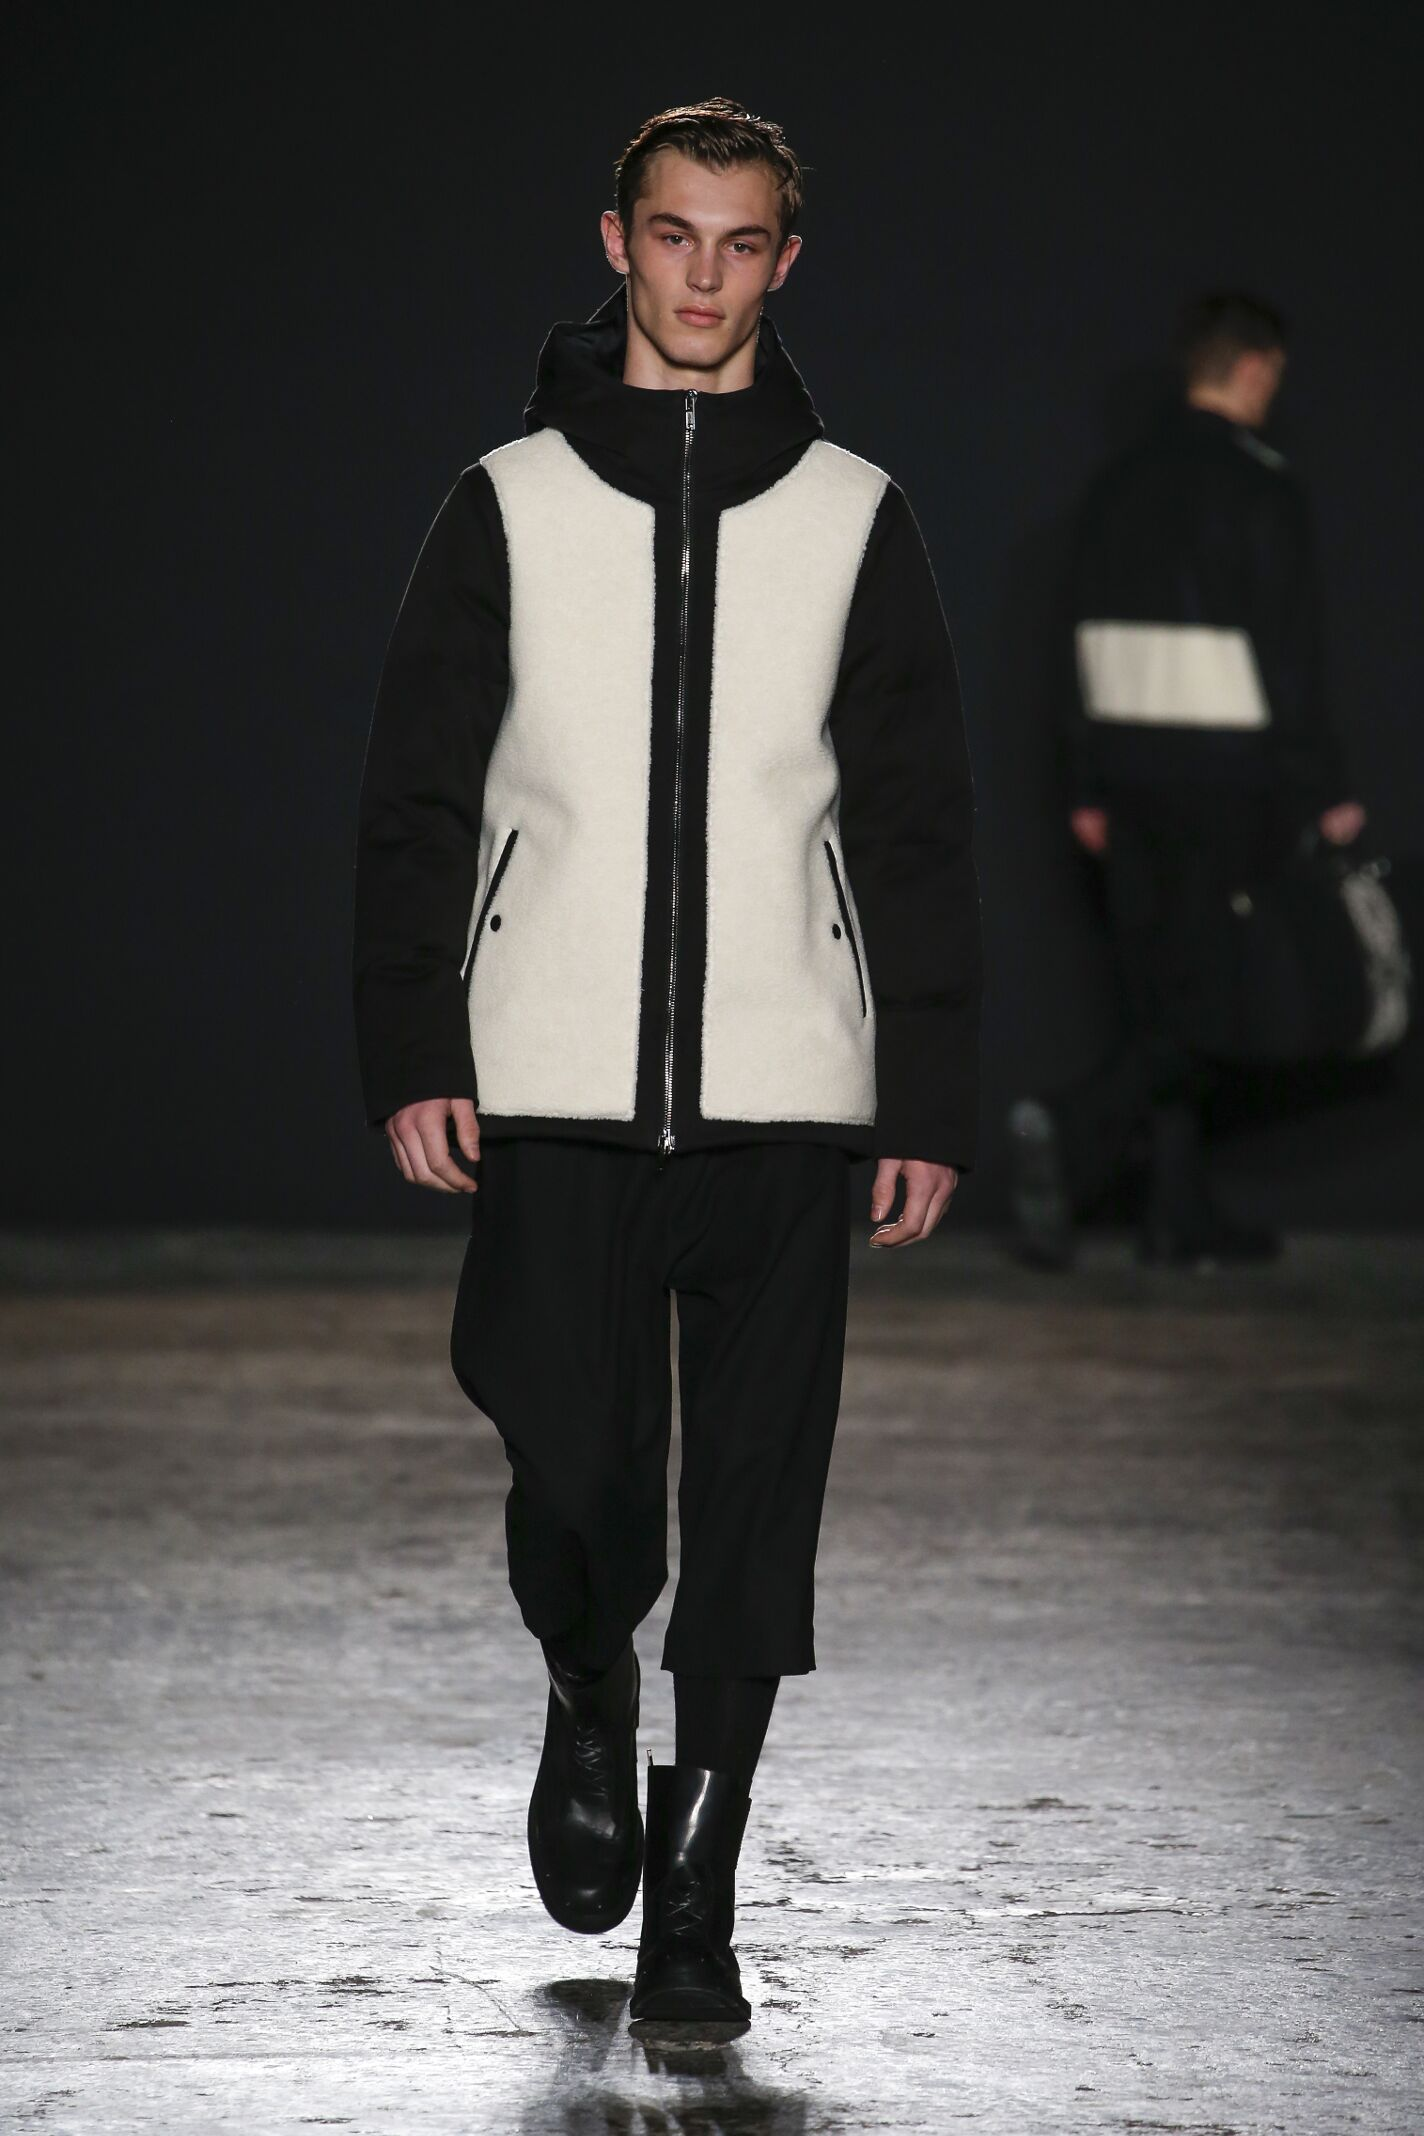 Ports 1961 Men's Collection 2016-2017